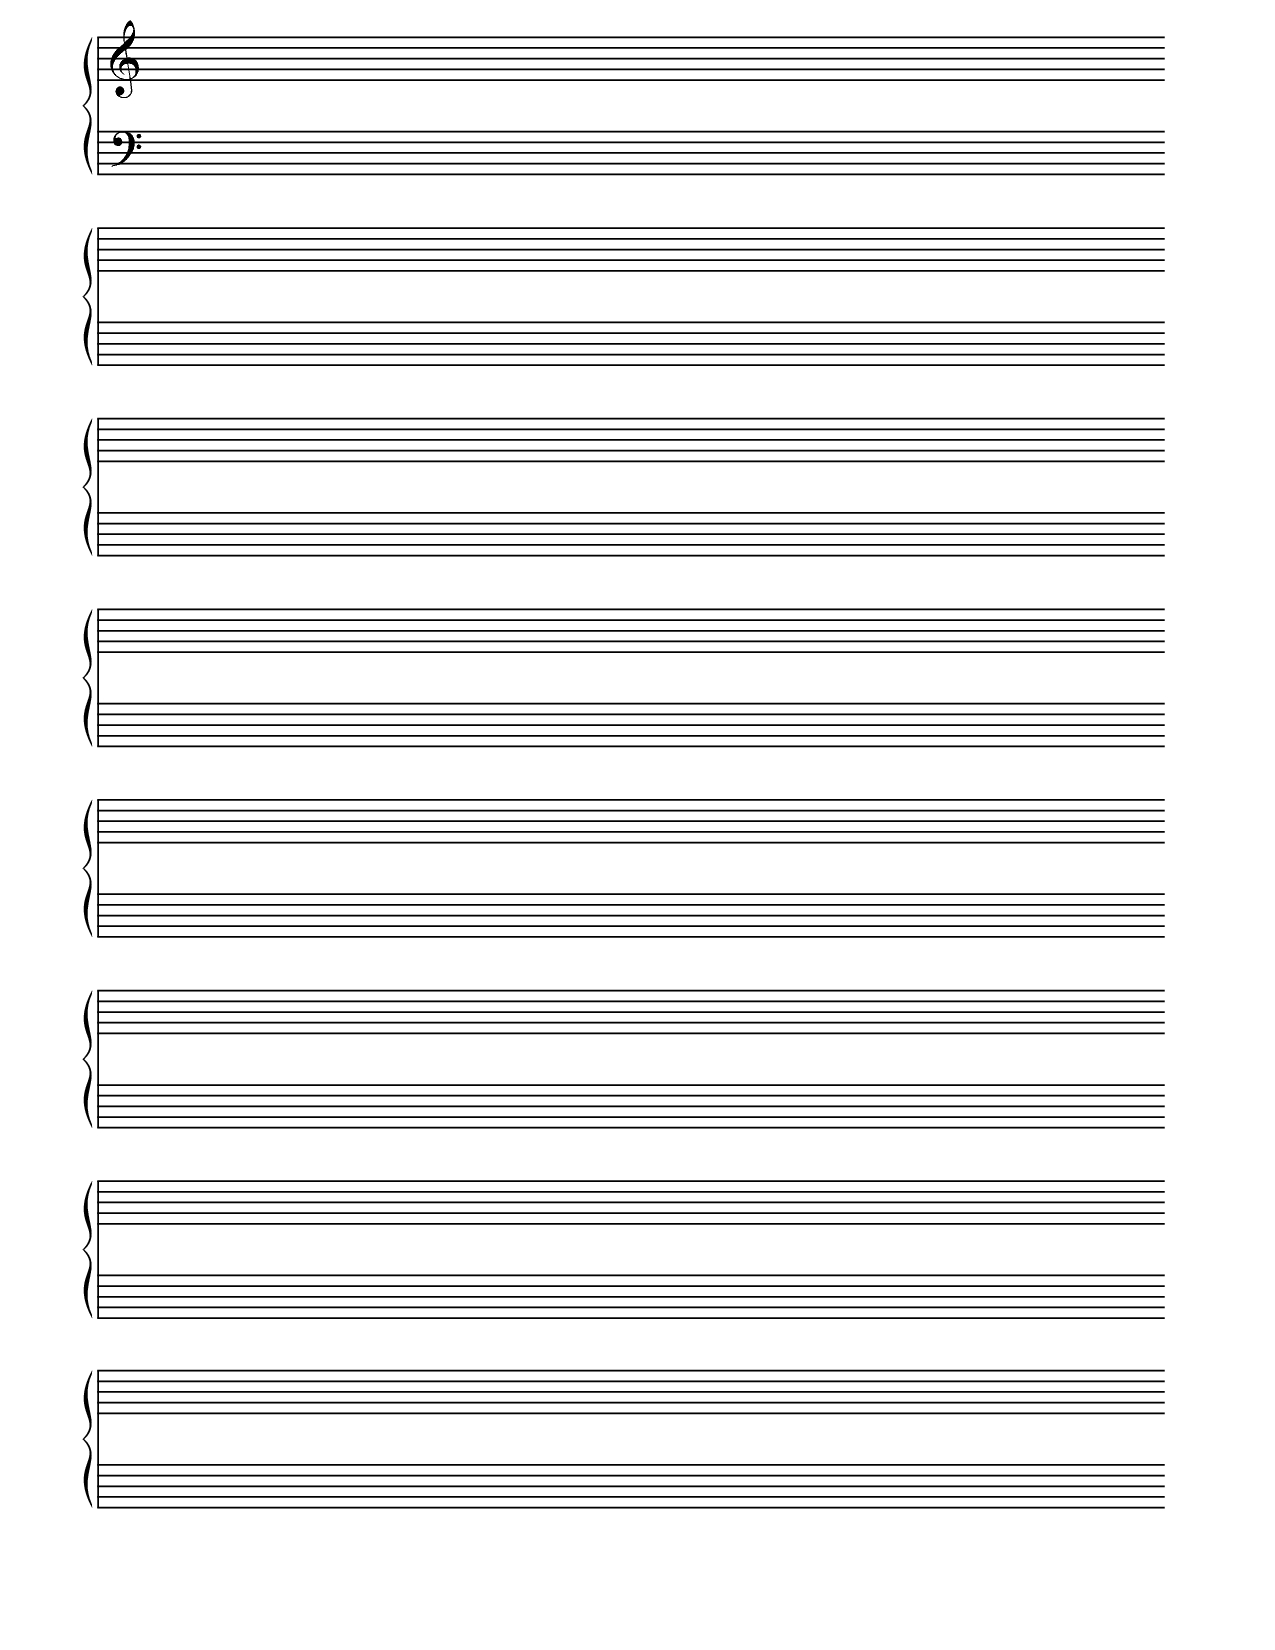 Printable Blank Piano Sheet Music Paper   Print In 2019   Pinterest - Free Printable Staff Paper